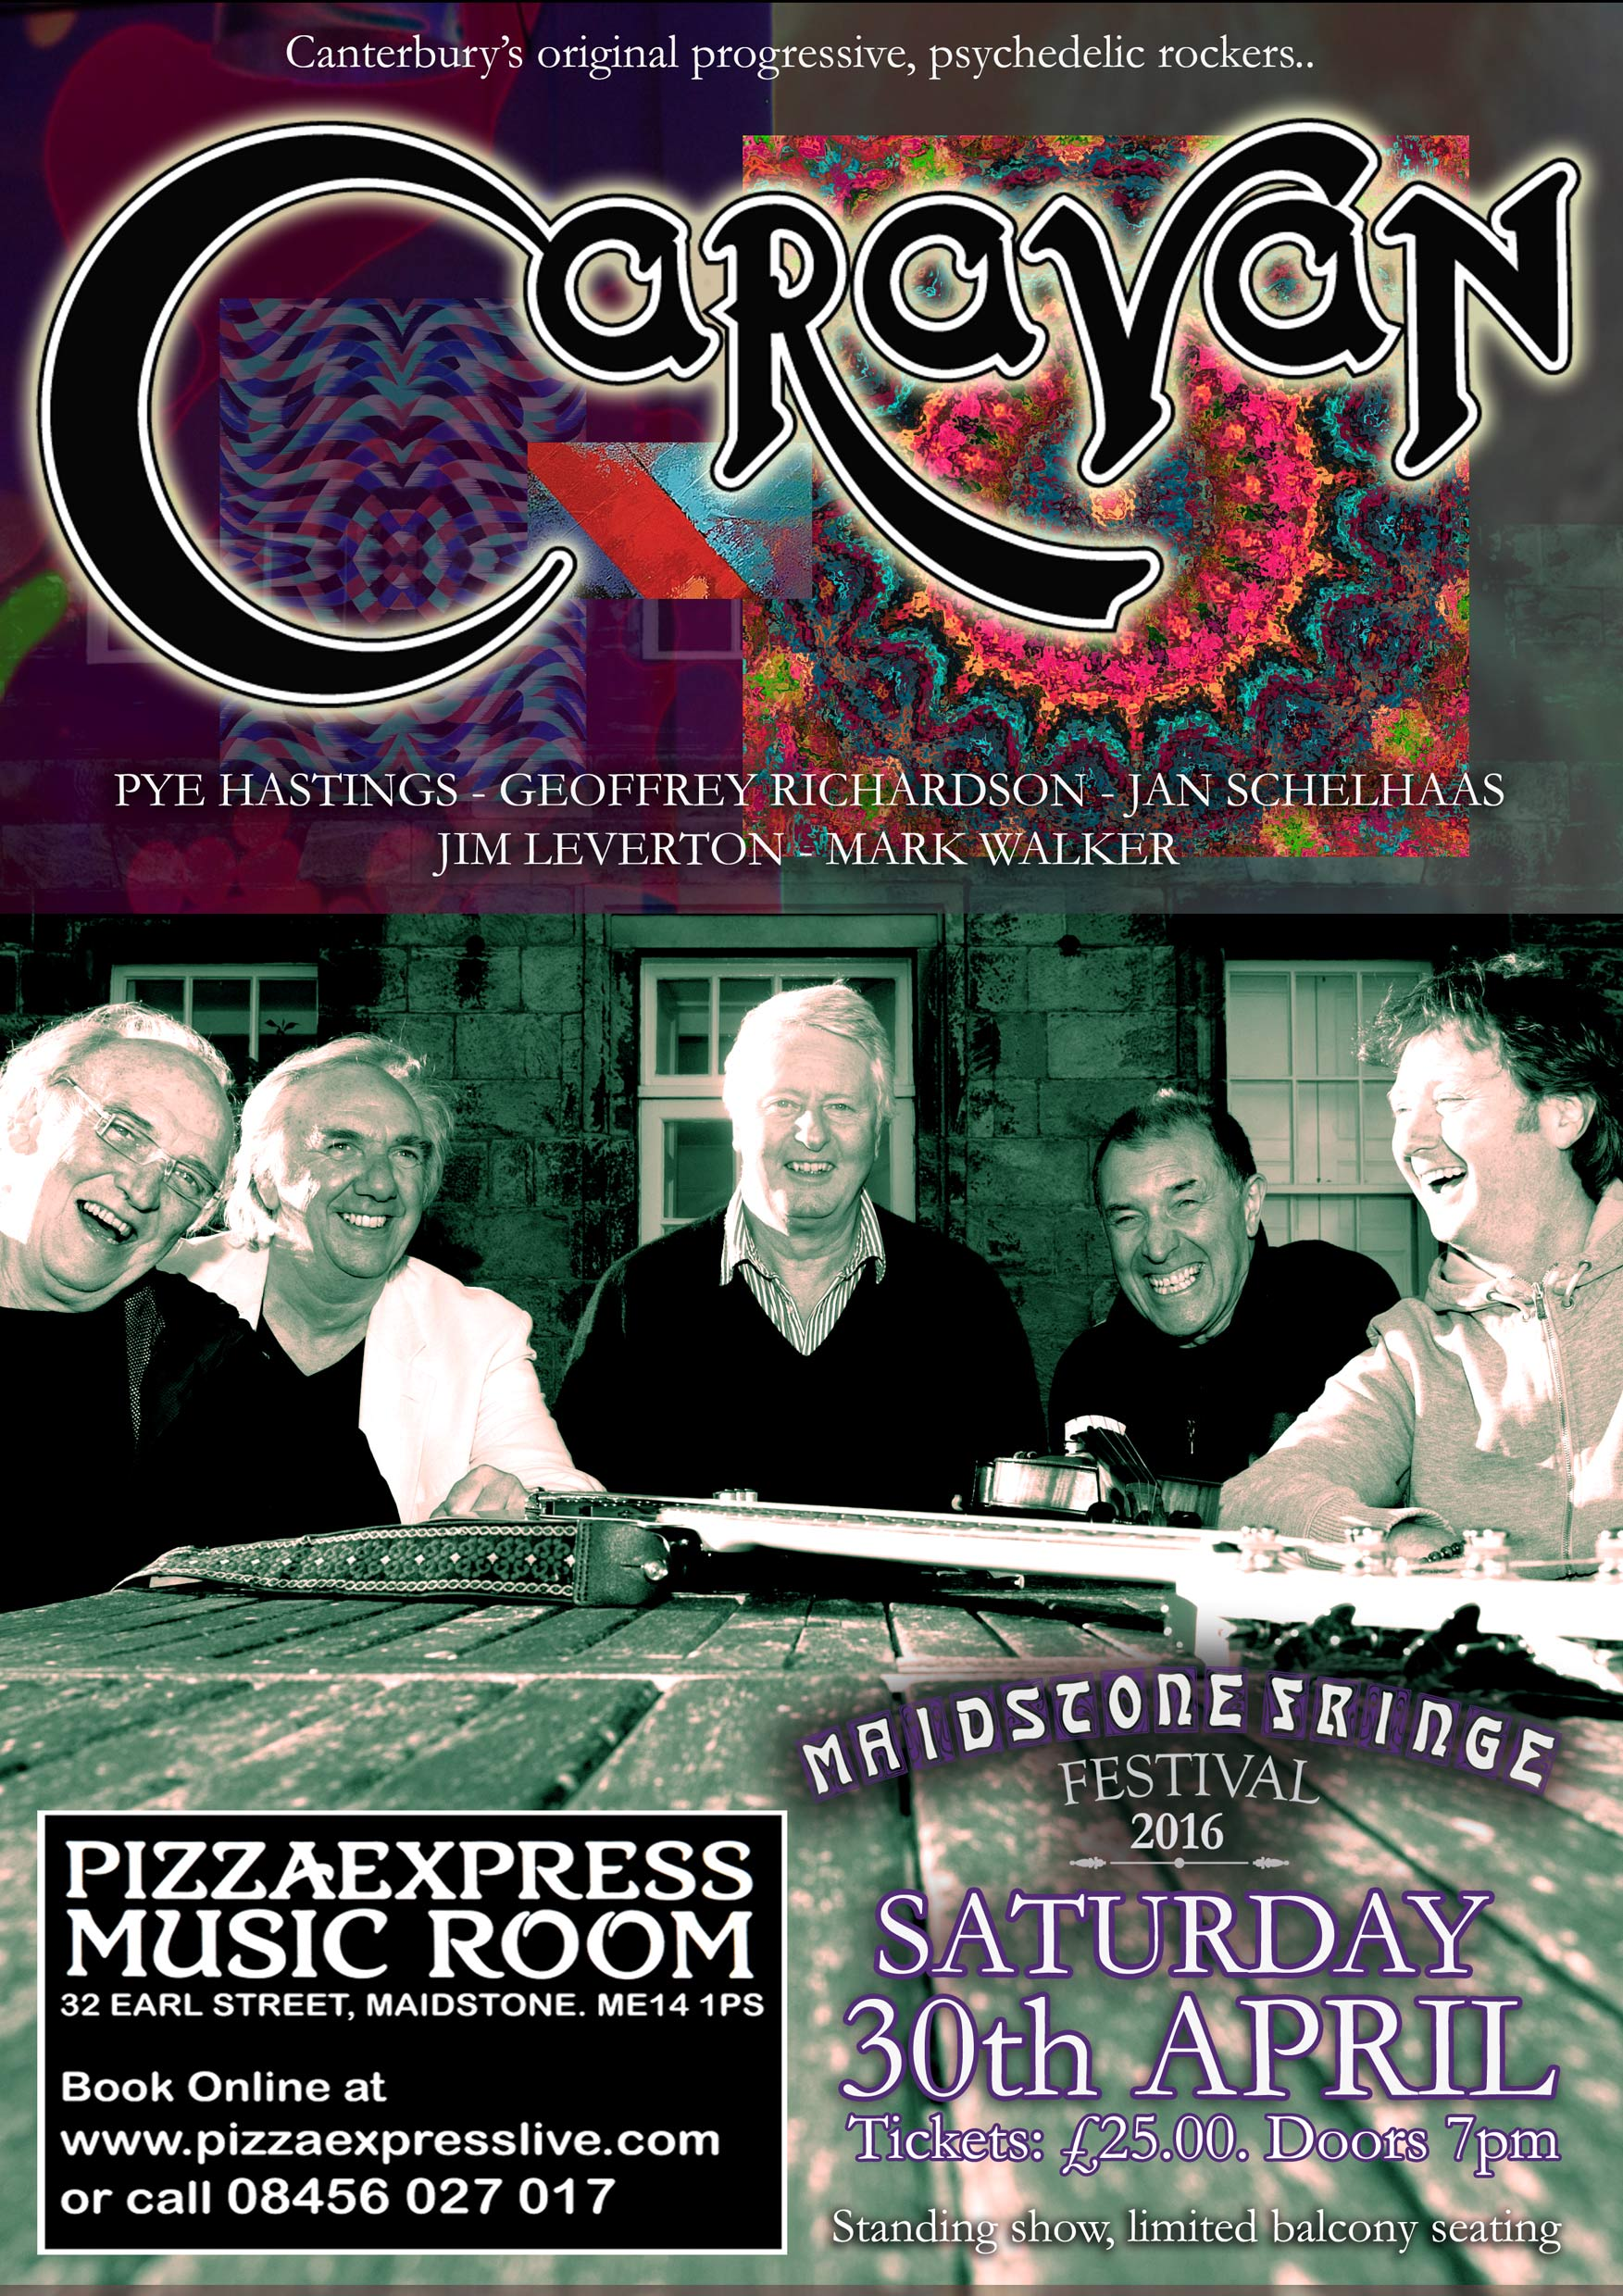 Intimate Gig This Saturday In Pizza Express Maidstone